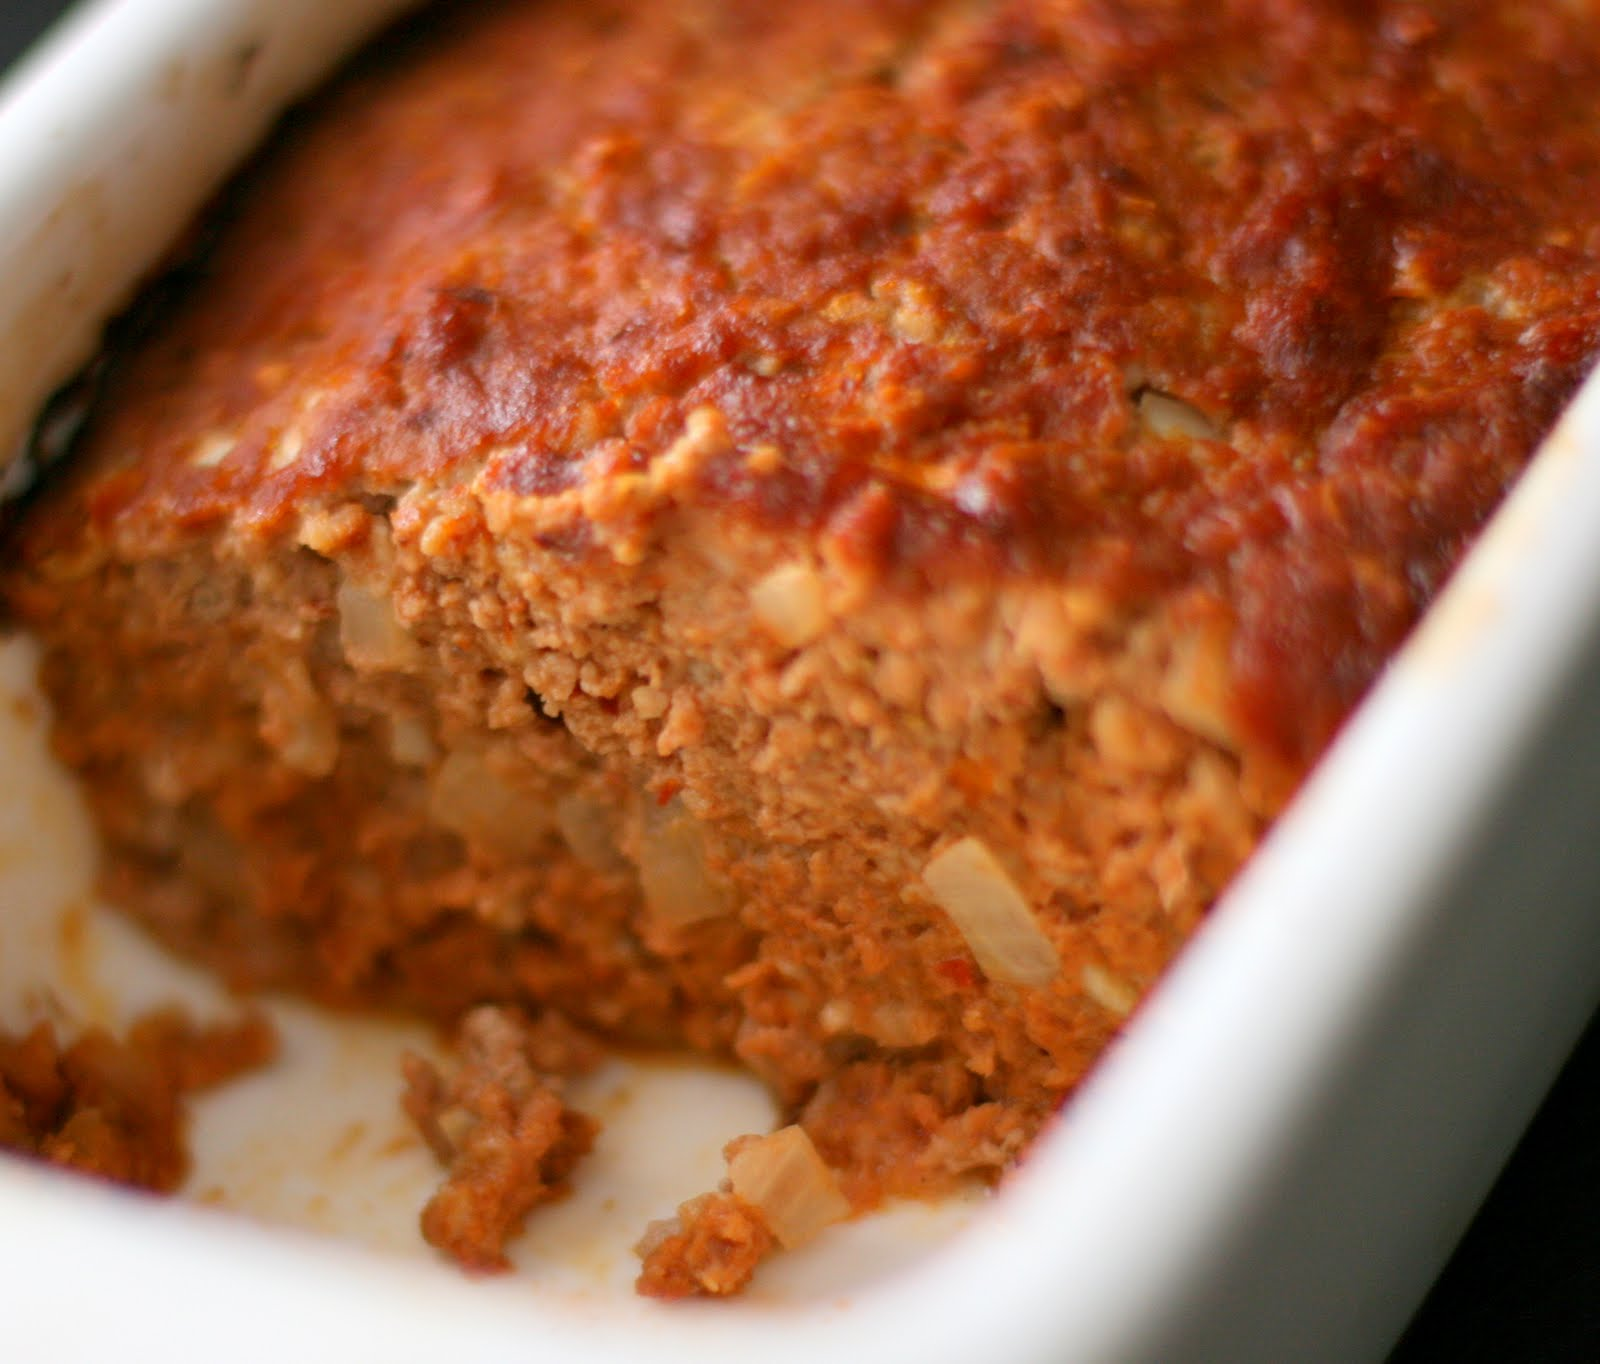 QlinArt: Very Tasty Meatloaf Made With Rolled Oats